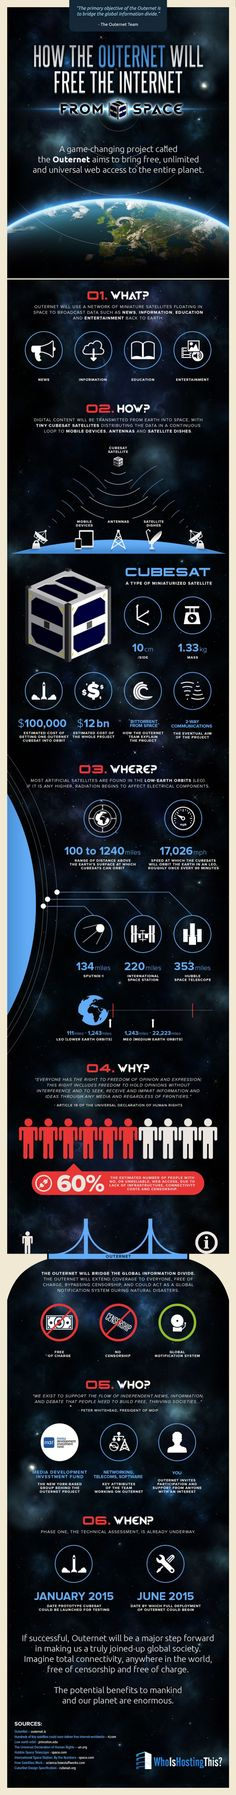 How The Outernet Will Free The Internet From Space - A game-changing project called the Outernet aims to bring free, unlimited and universal web access to the entire planet. | Infographic